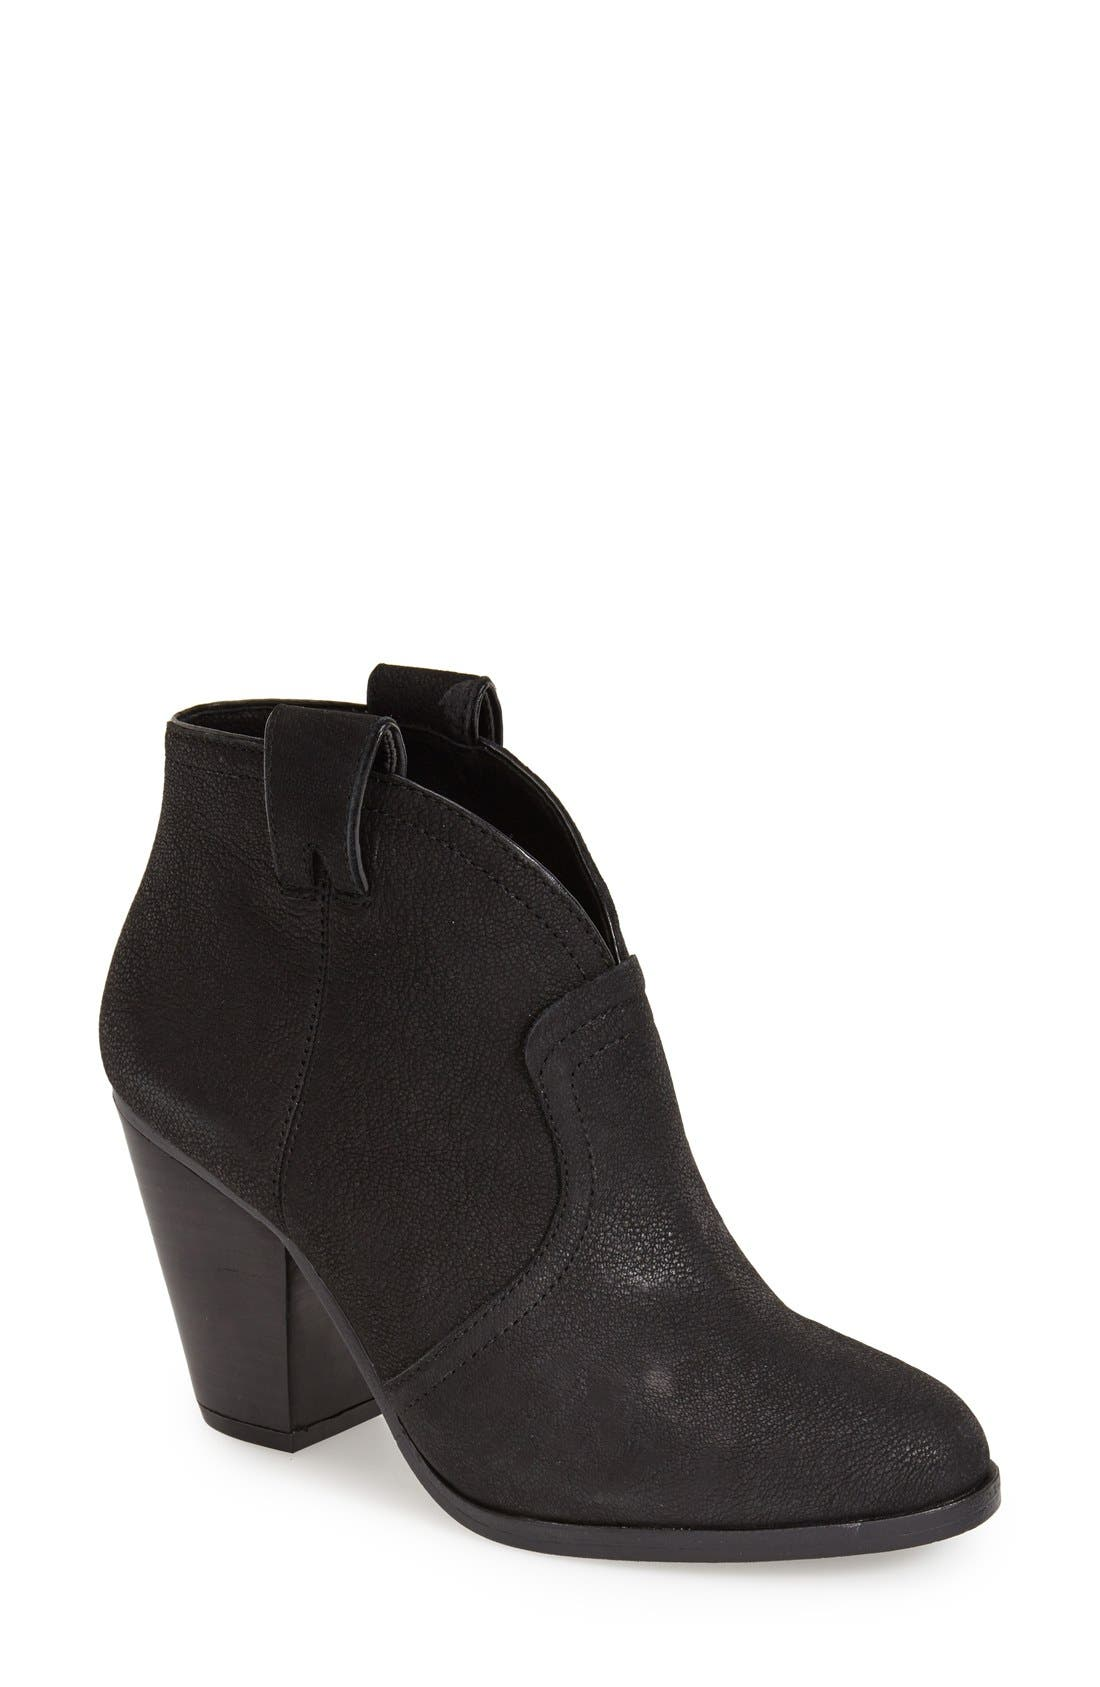 Main Image - Vince Camuto 'Hillsy' Almond Toe Ankle Bootie (Women)